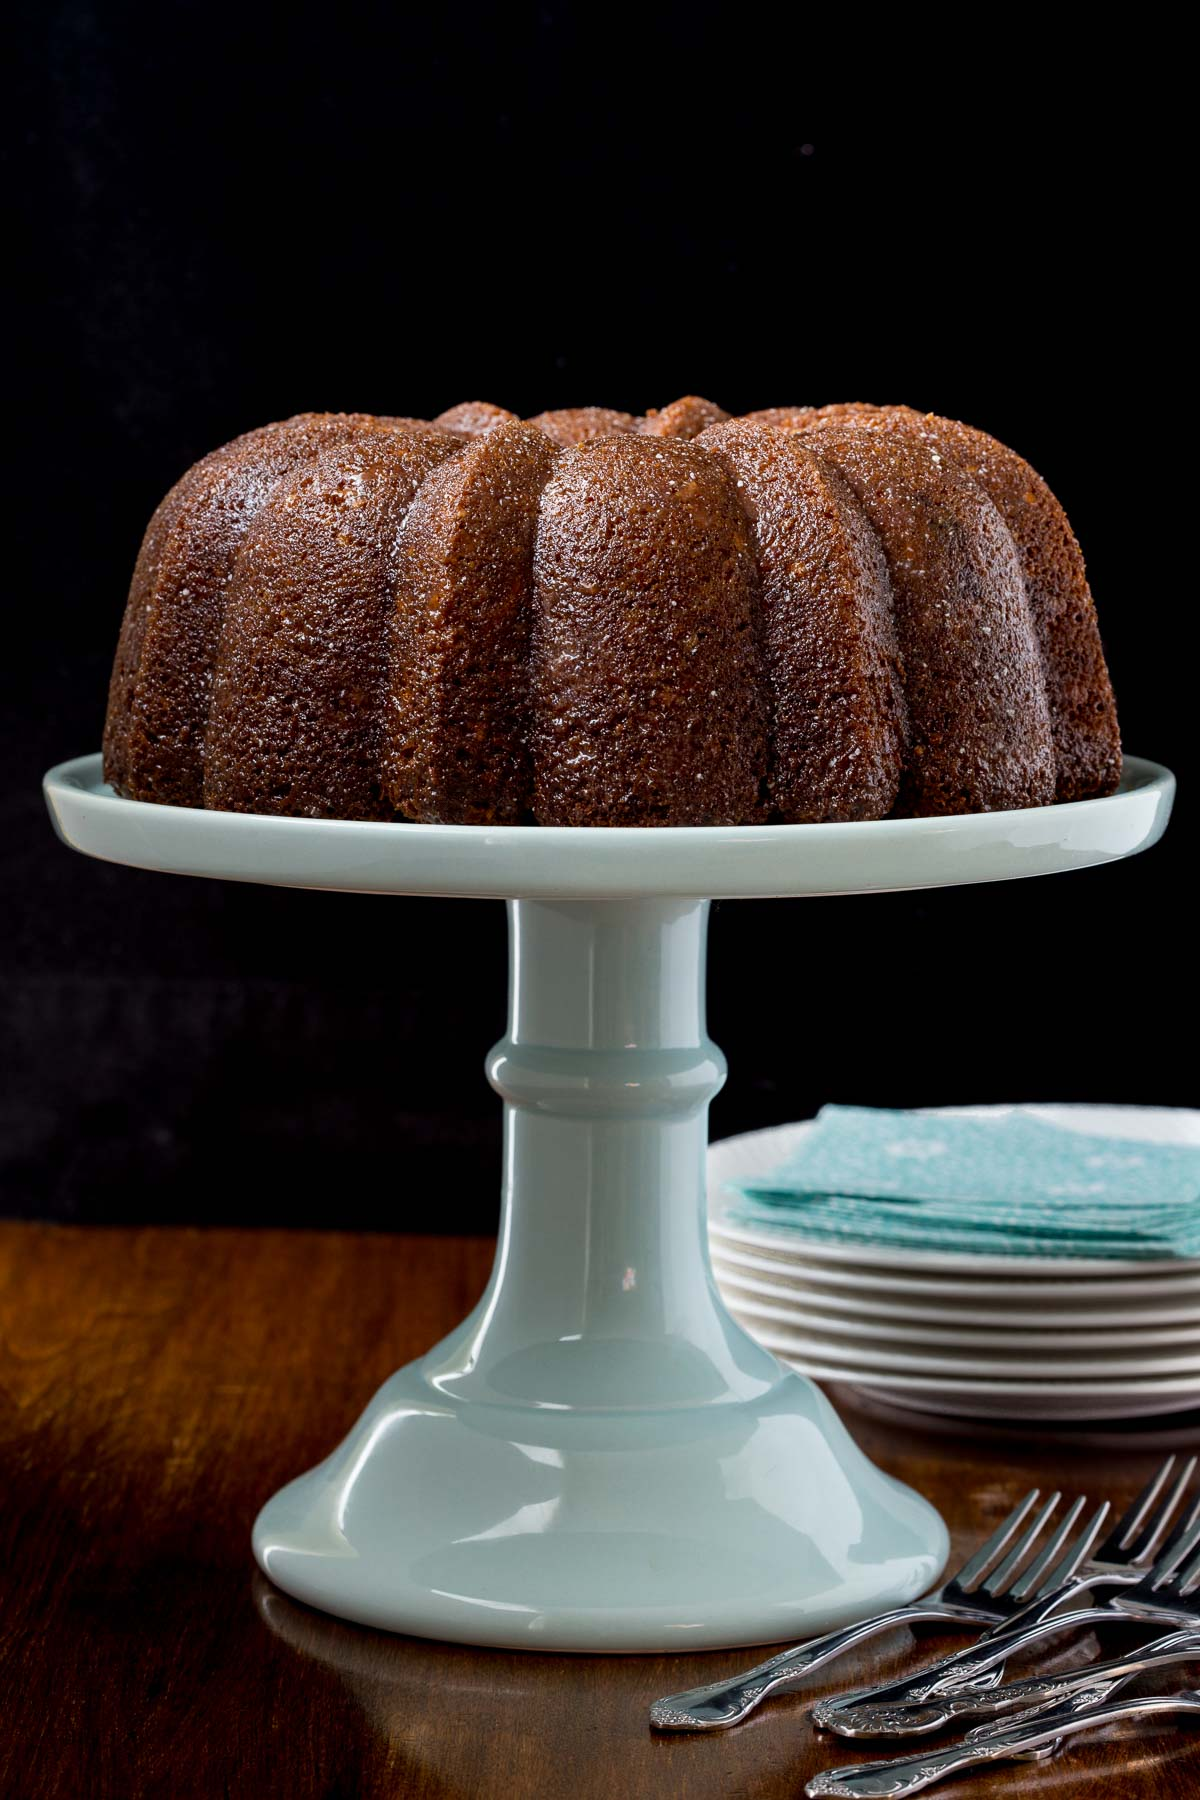 Photo of an Easy Carrot Cake with Buttermilk Glaze on a pale blue pedestal cake stand against a black background.